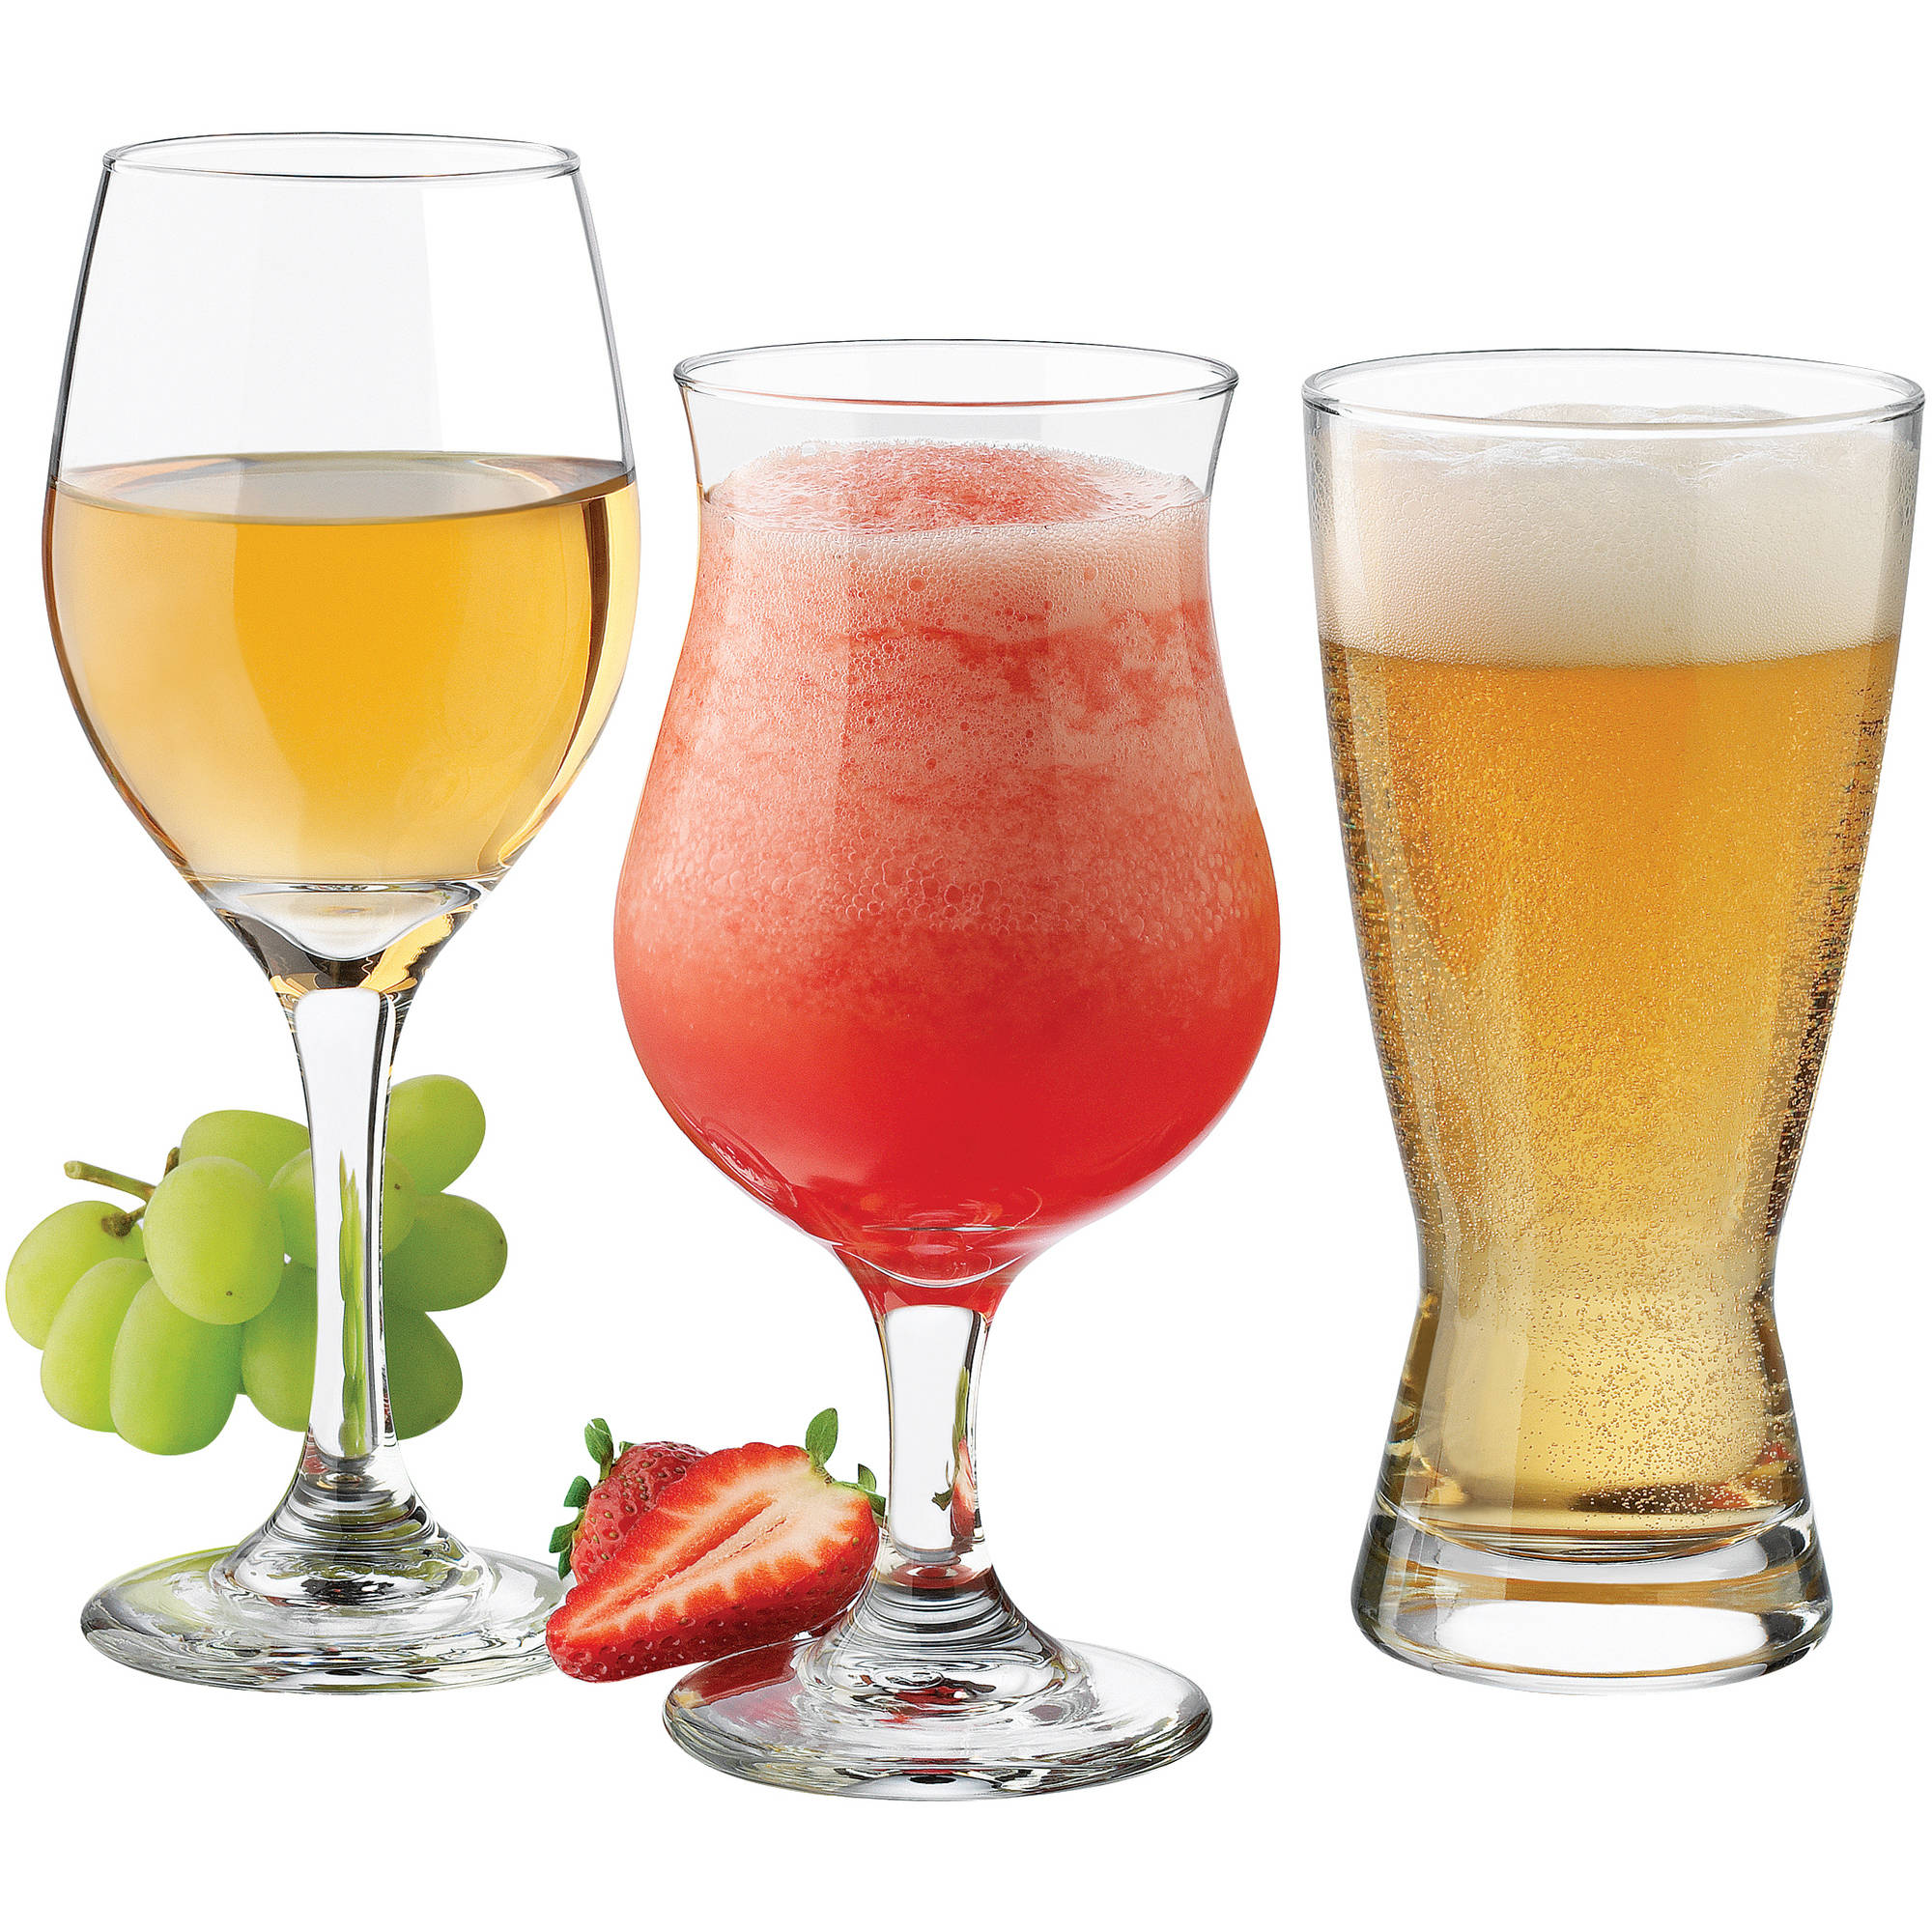 Libbey Celebrations Barware and Glassware, Set of 12